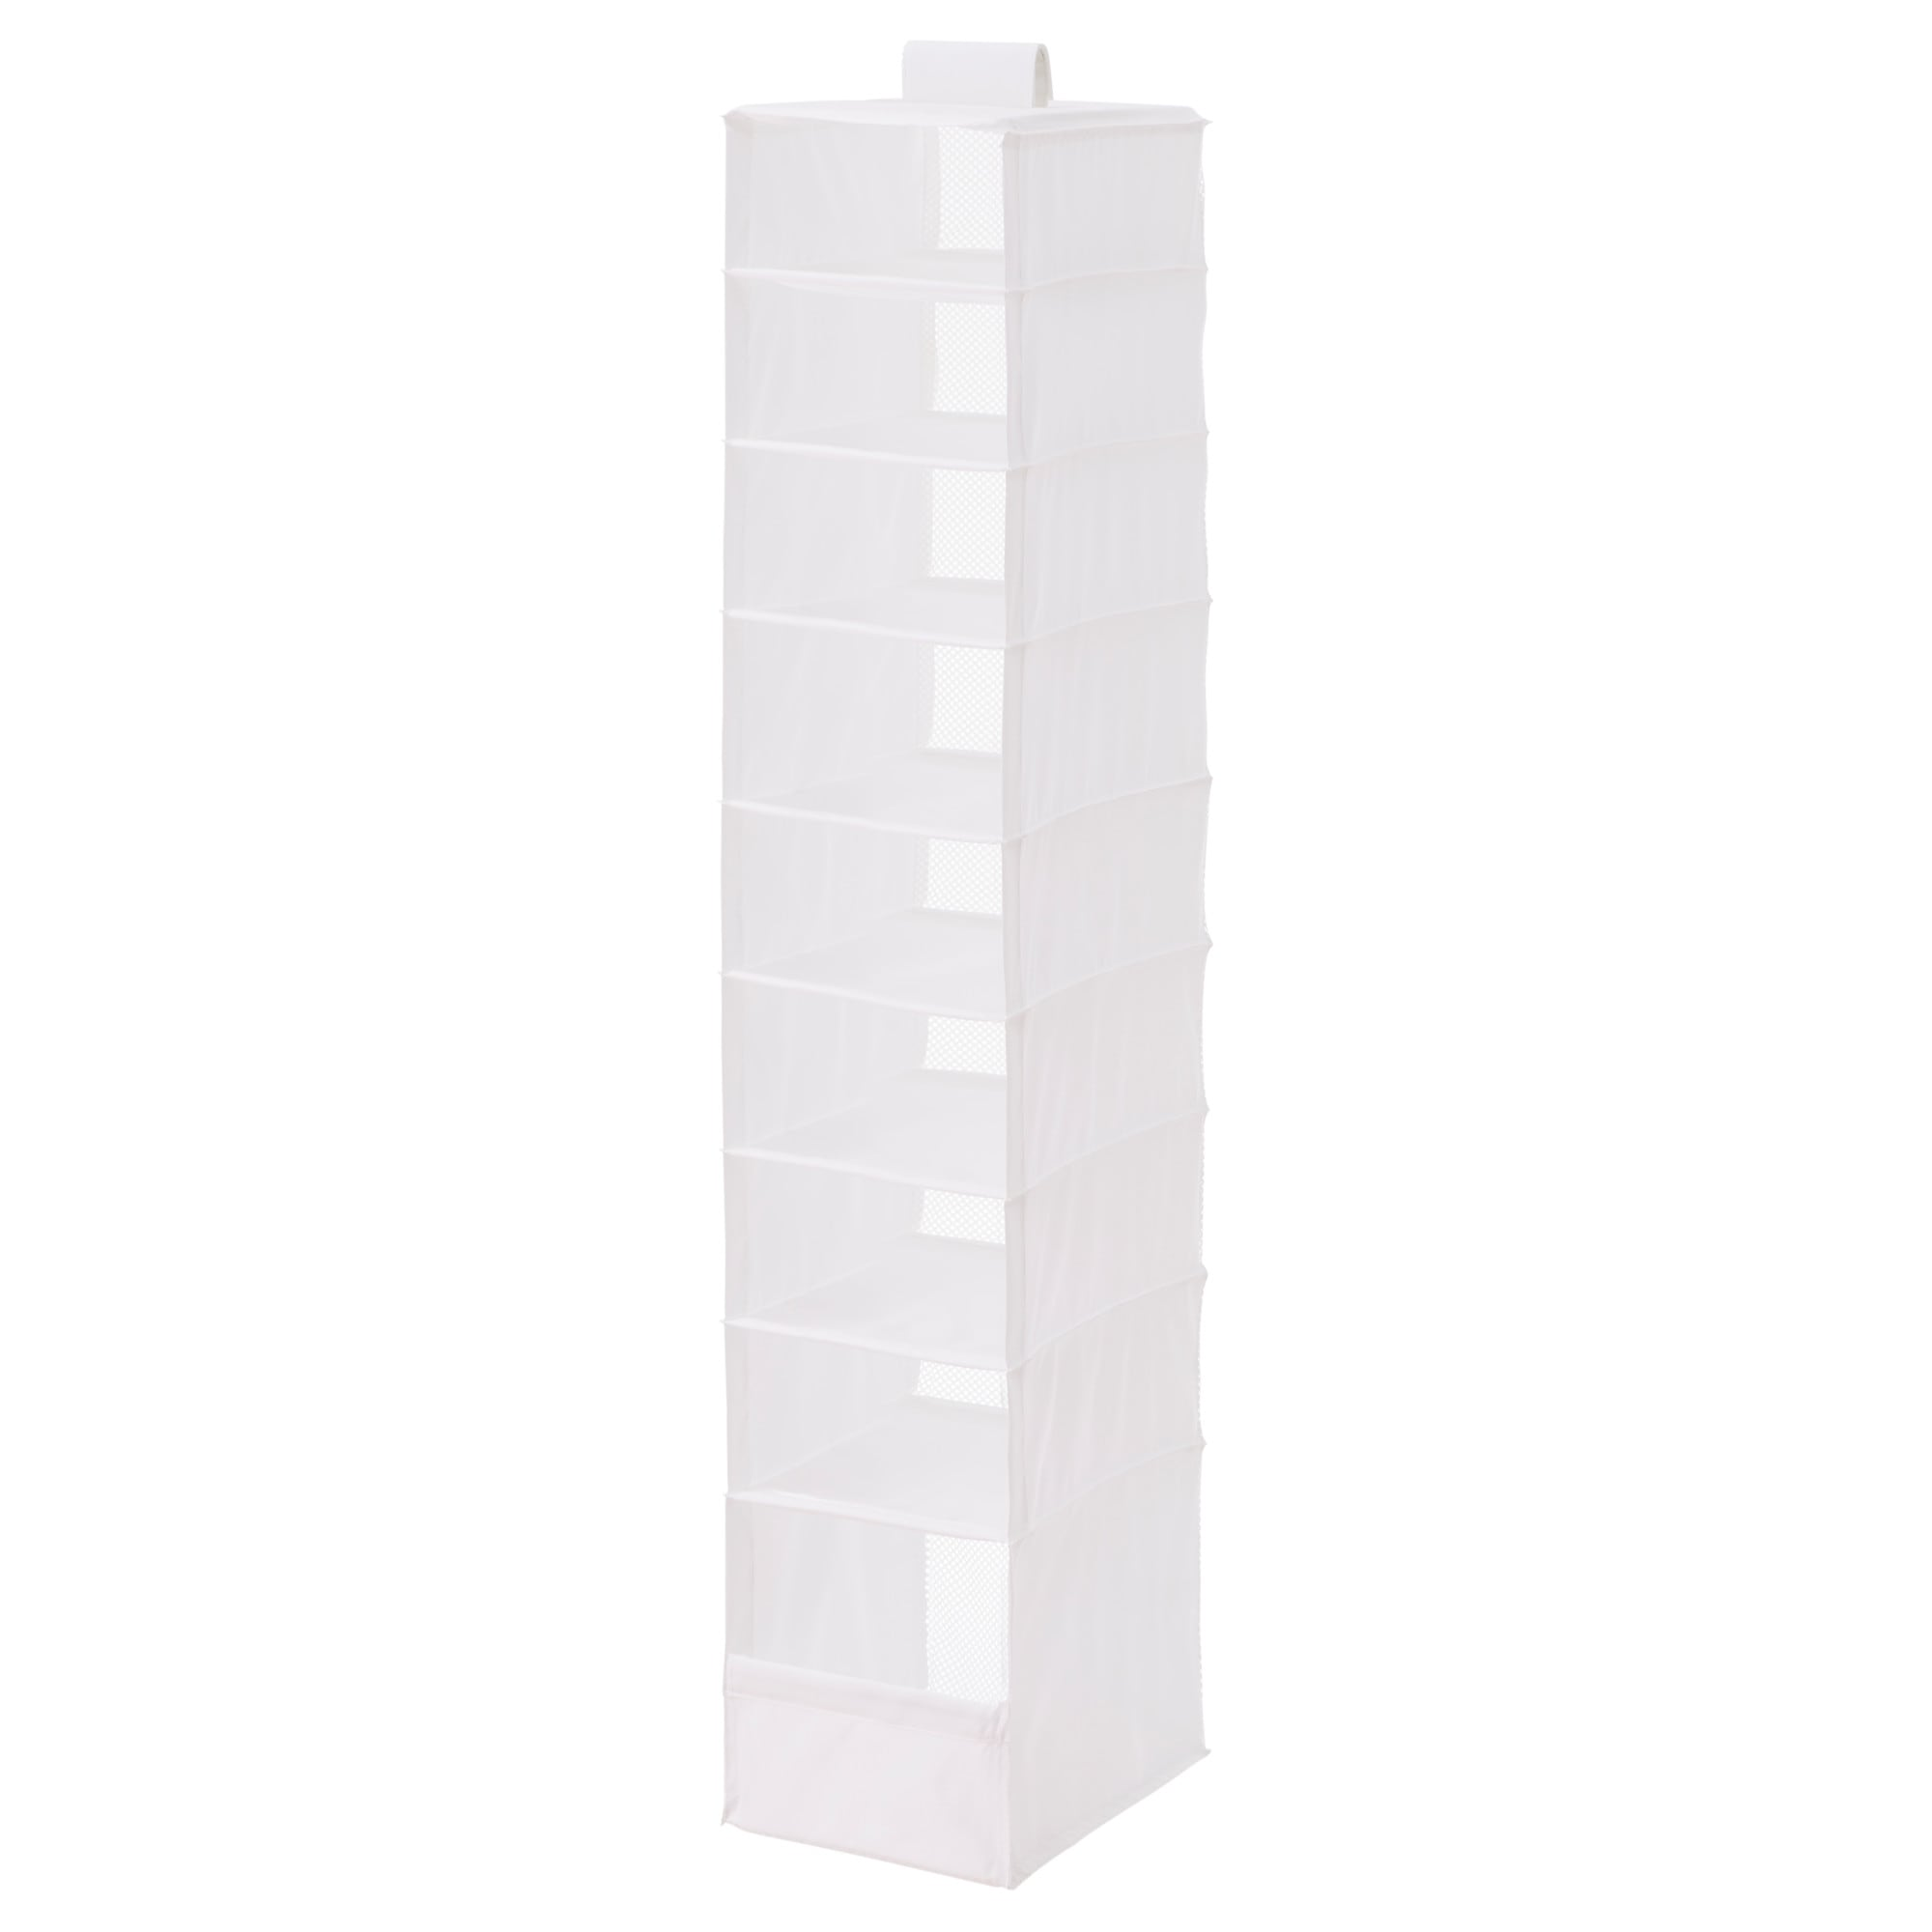 Skubb Organizer With 9 Compartments